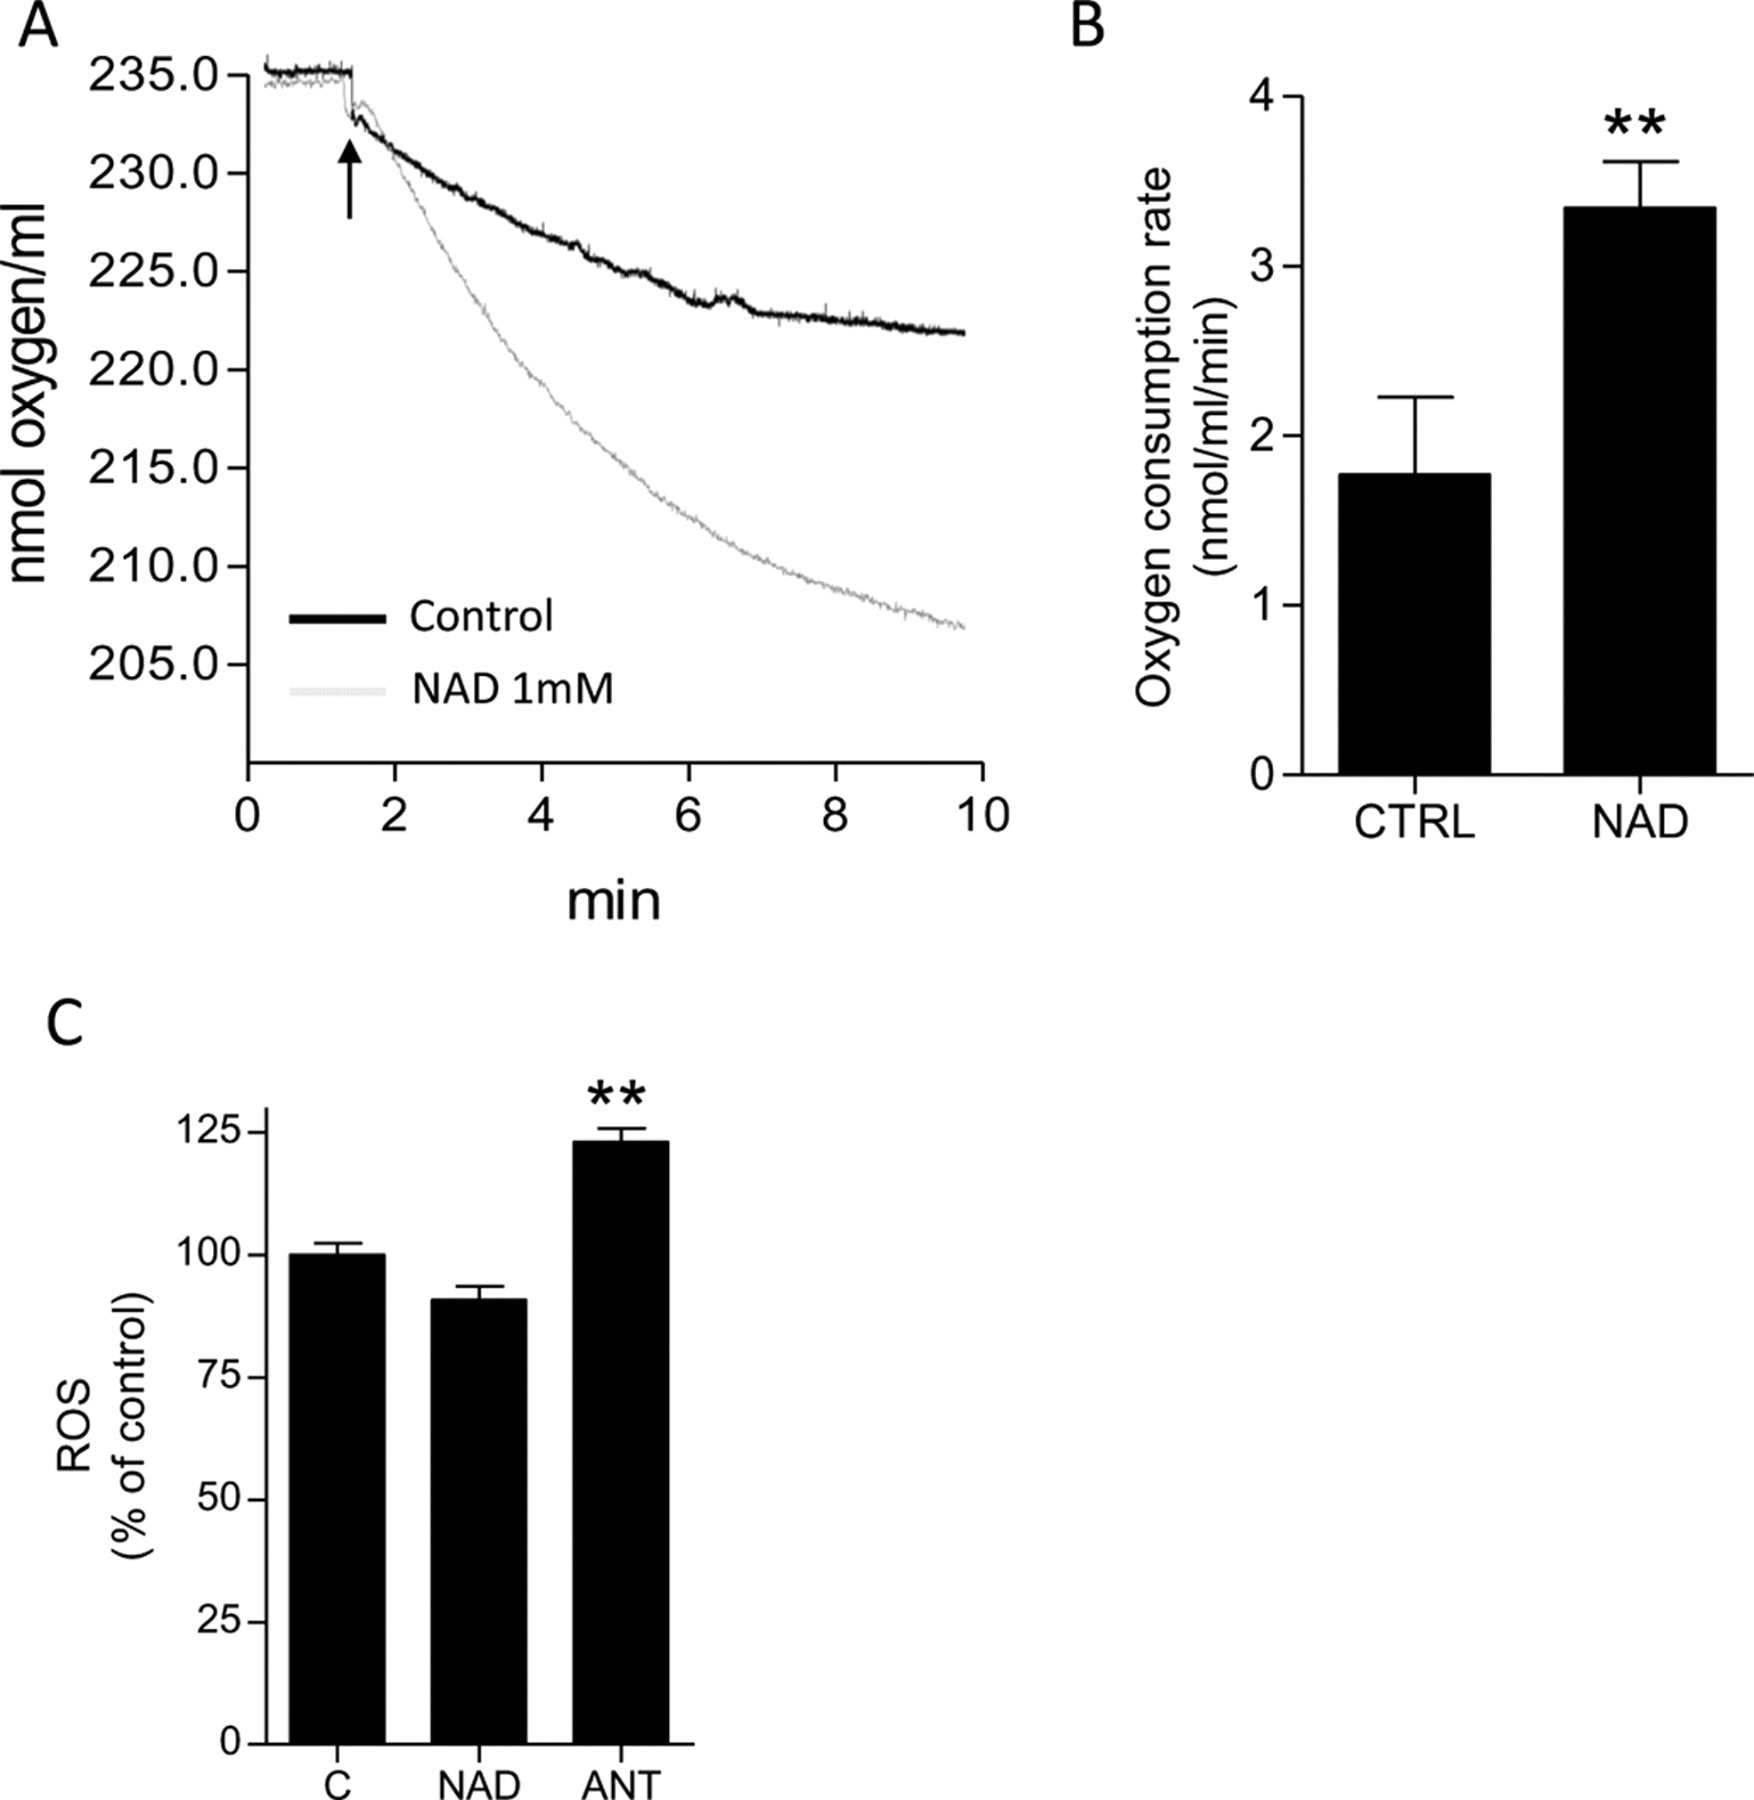 Pharmacological Effects of Exogenous NAD on Mitochondrial